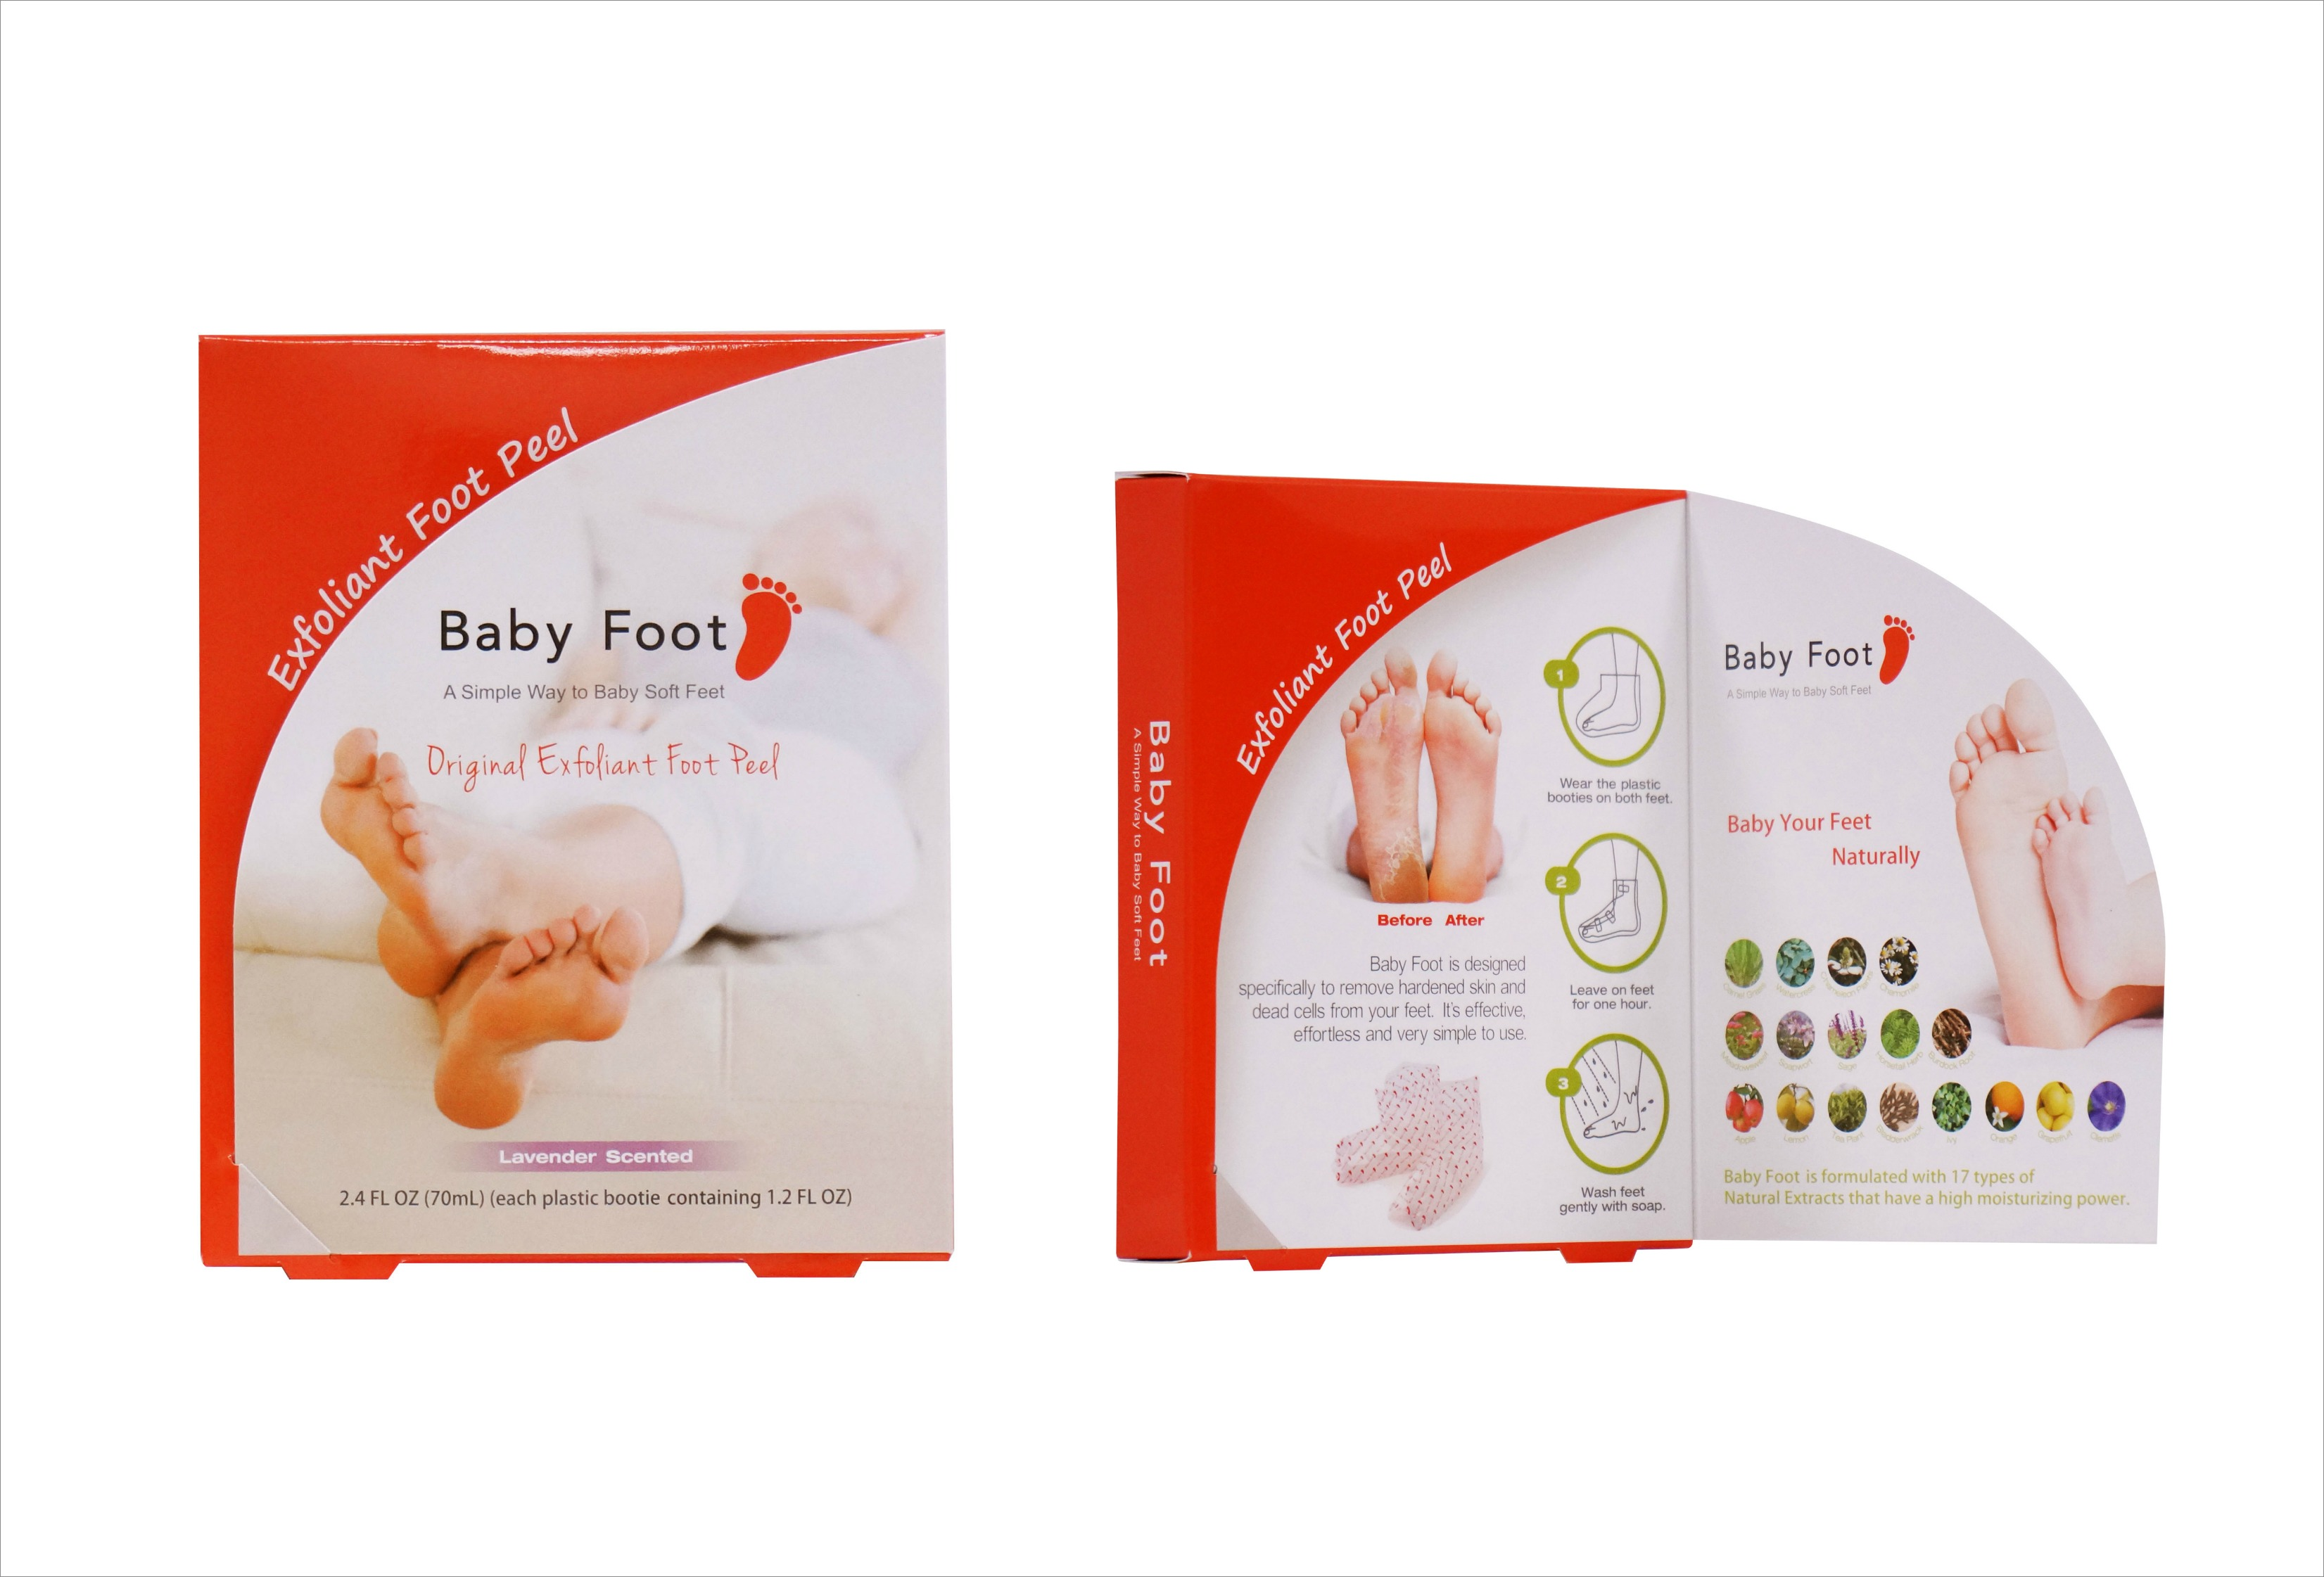 Baby Foot dead skin cell remover for feet